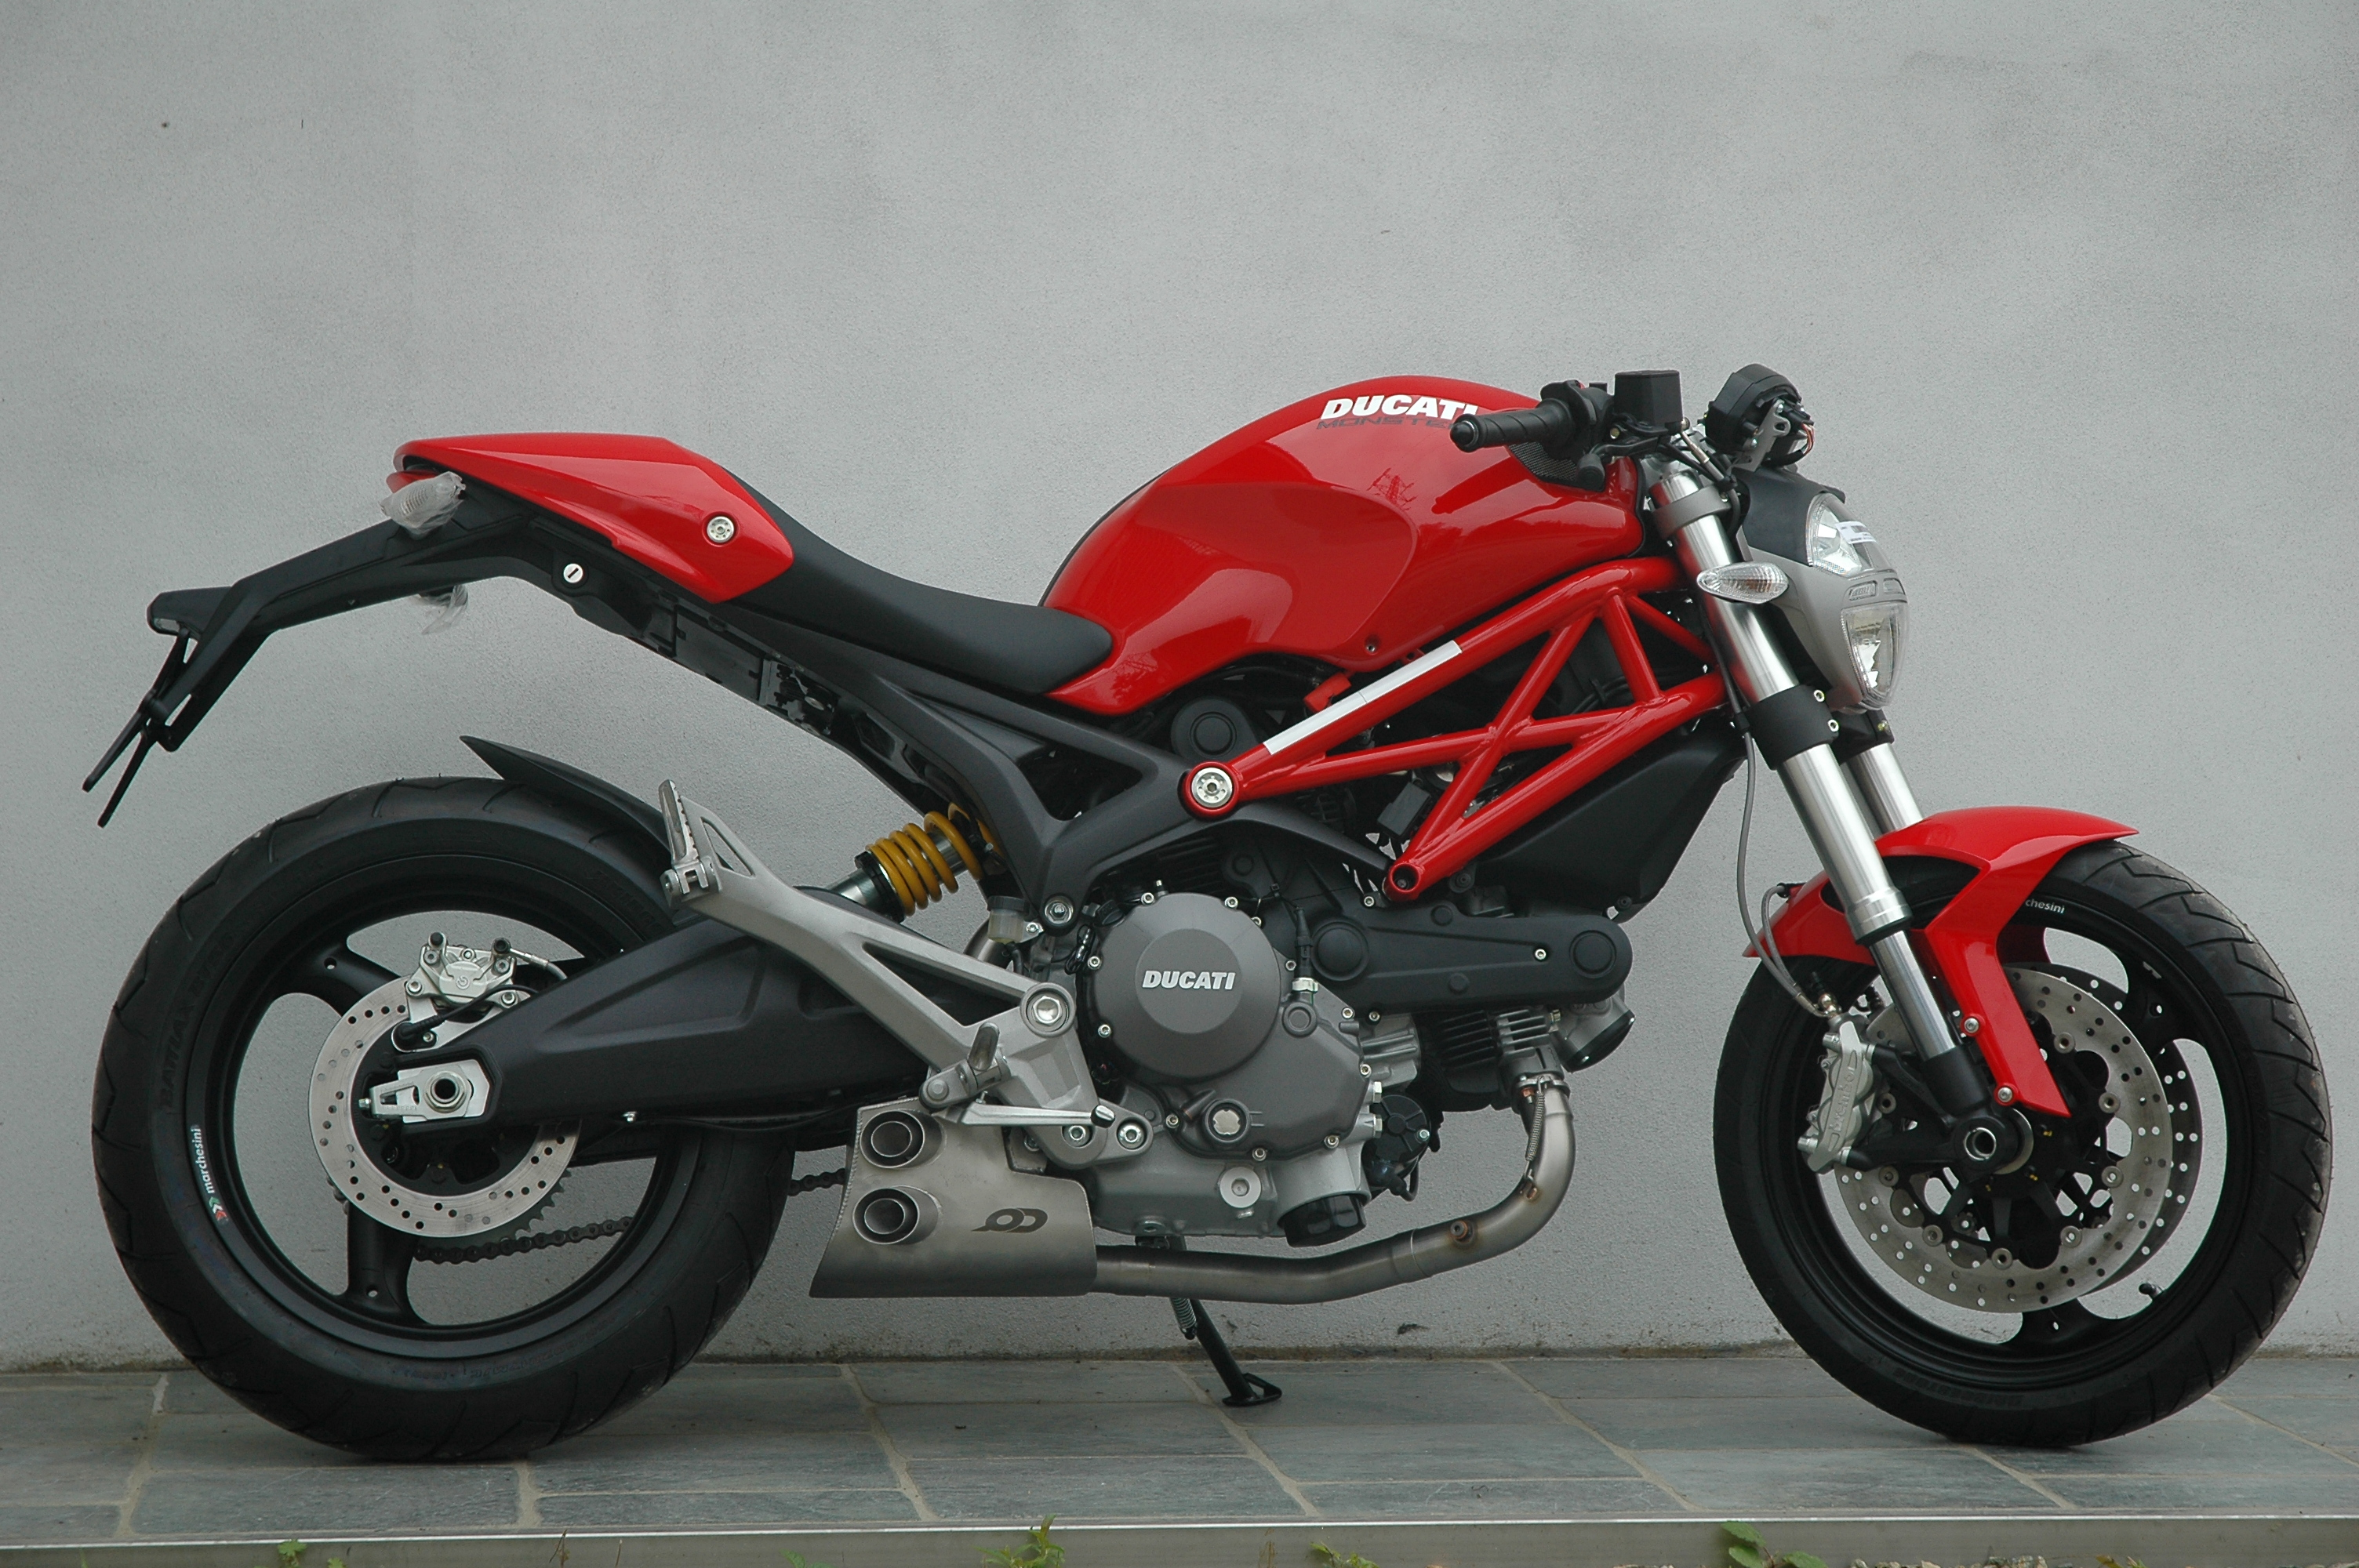 ducati monster 696 ex box series exhaust system qd exhaust. Black Bedroom Furniture Sets. Home Design Ideas